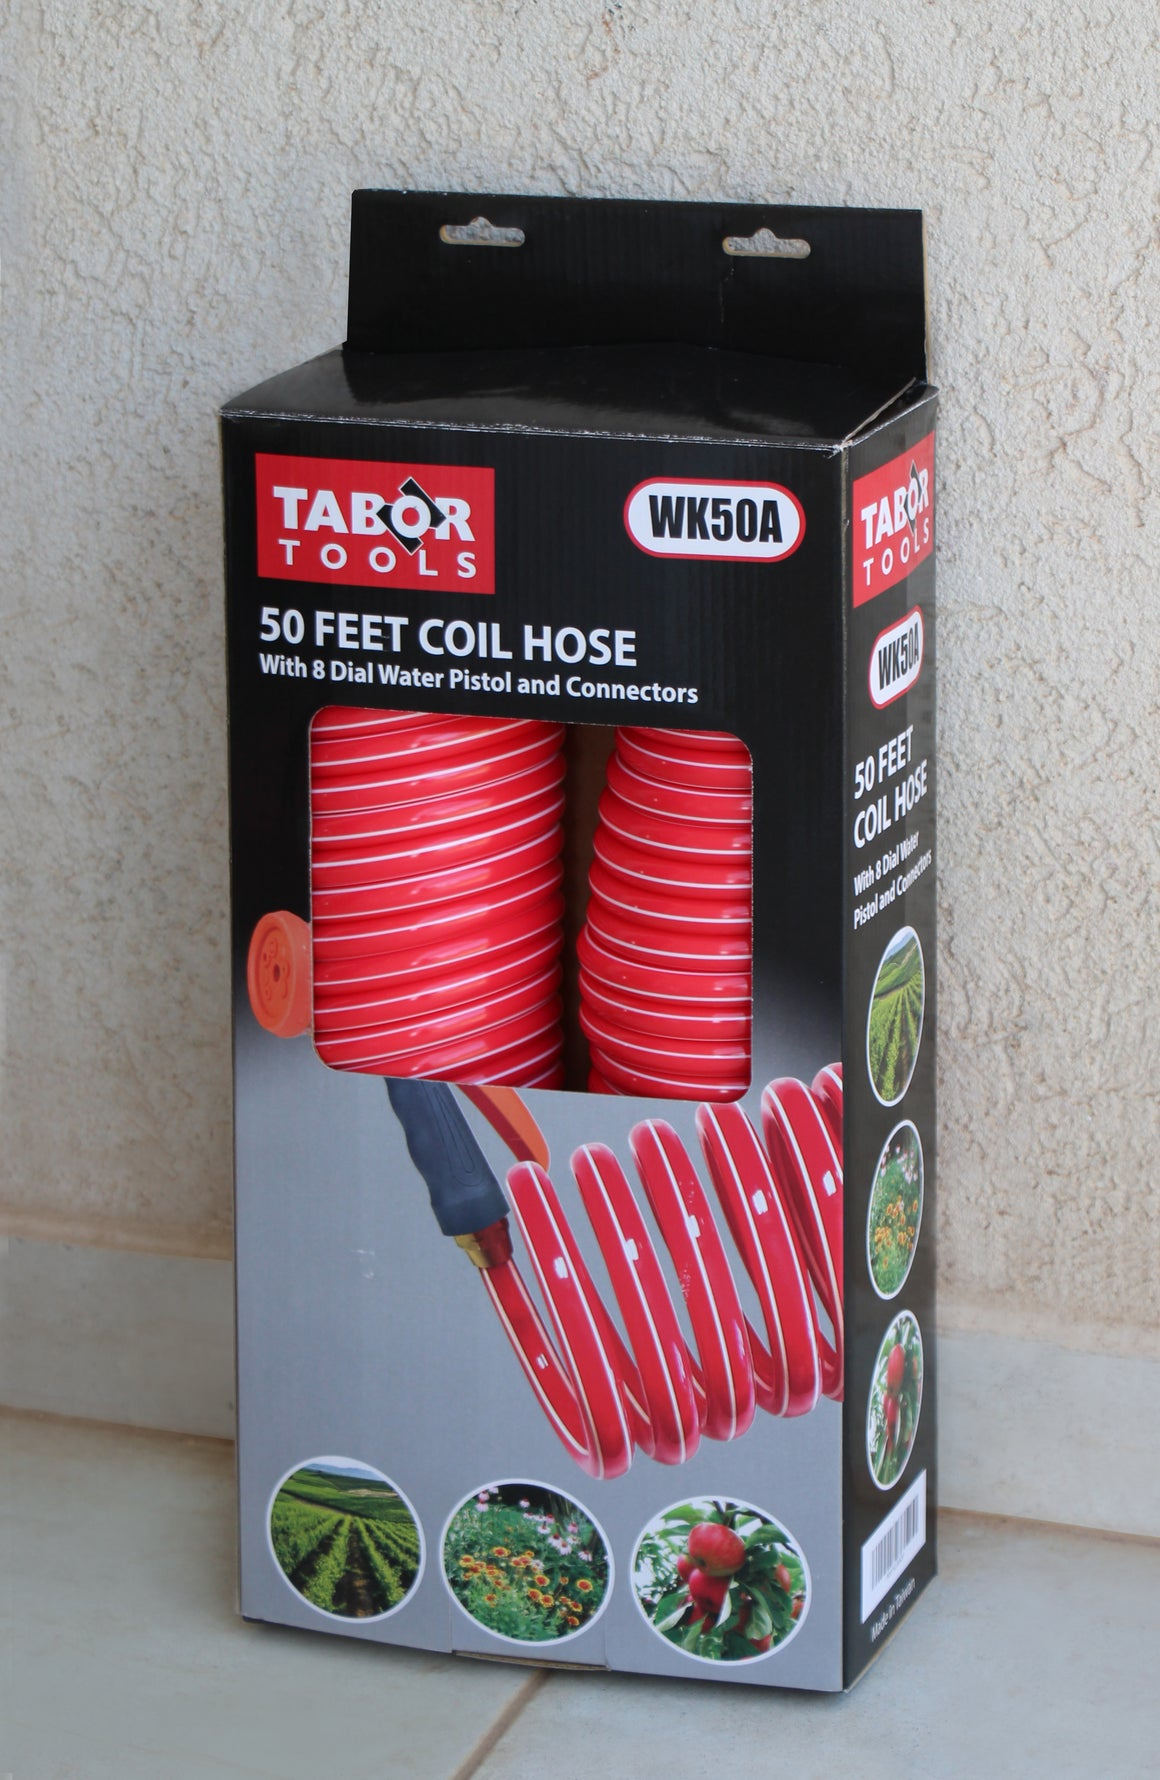 "TABOR TOOLS Coil Garden Hose,50 FT Retractable Recoil Watering Hose with 8-Pattern Spray Nozzle, Corrosion Resistant 3/4"" Solid Brass Connectors, Lightweight and Durable WK50A"